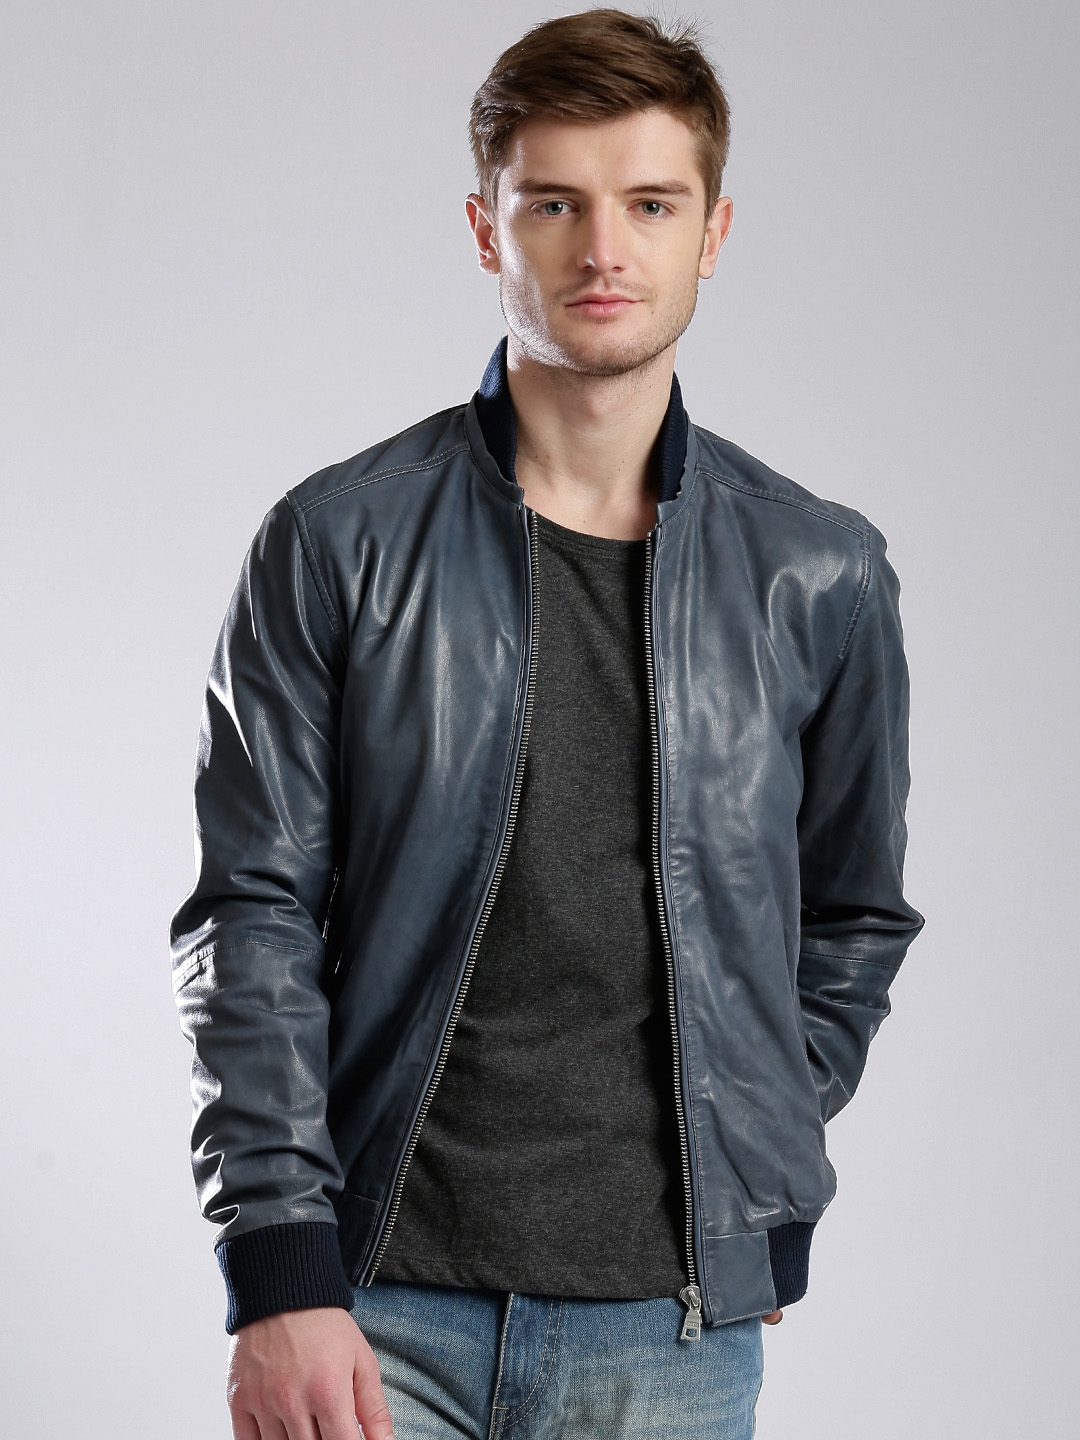 online sale excellent quality attractive & durable GAS Blue Leather Slim Fit Jacket